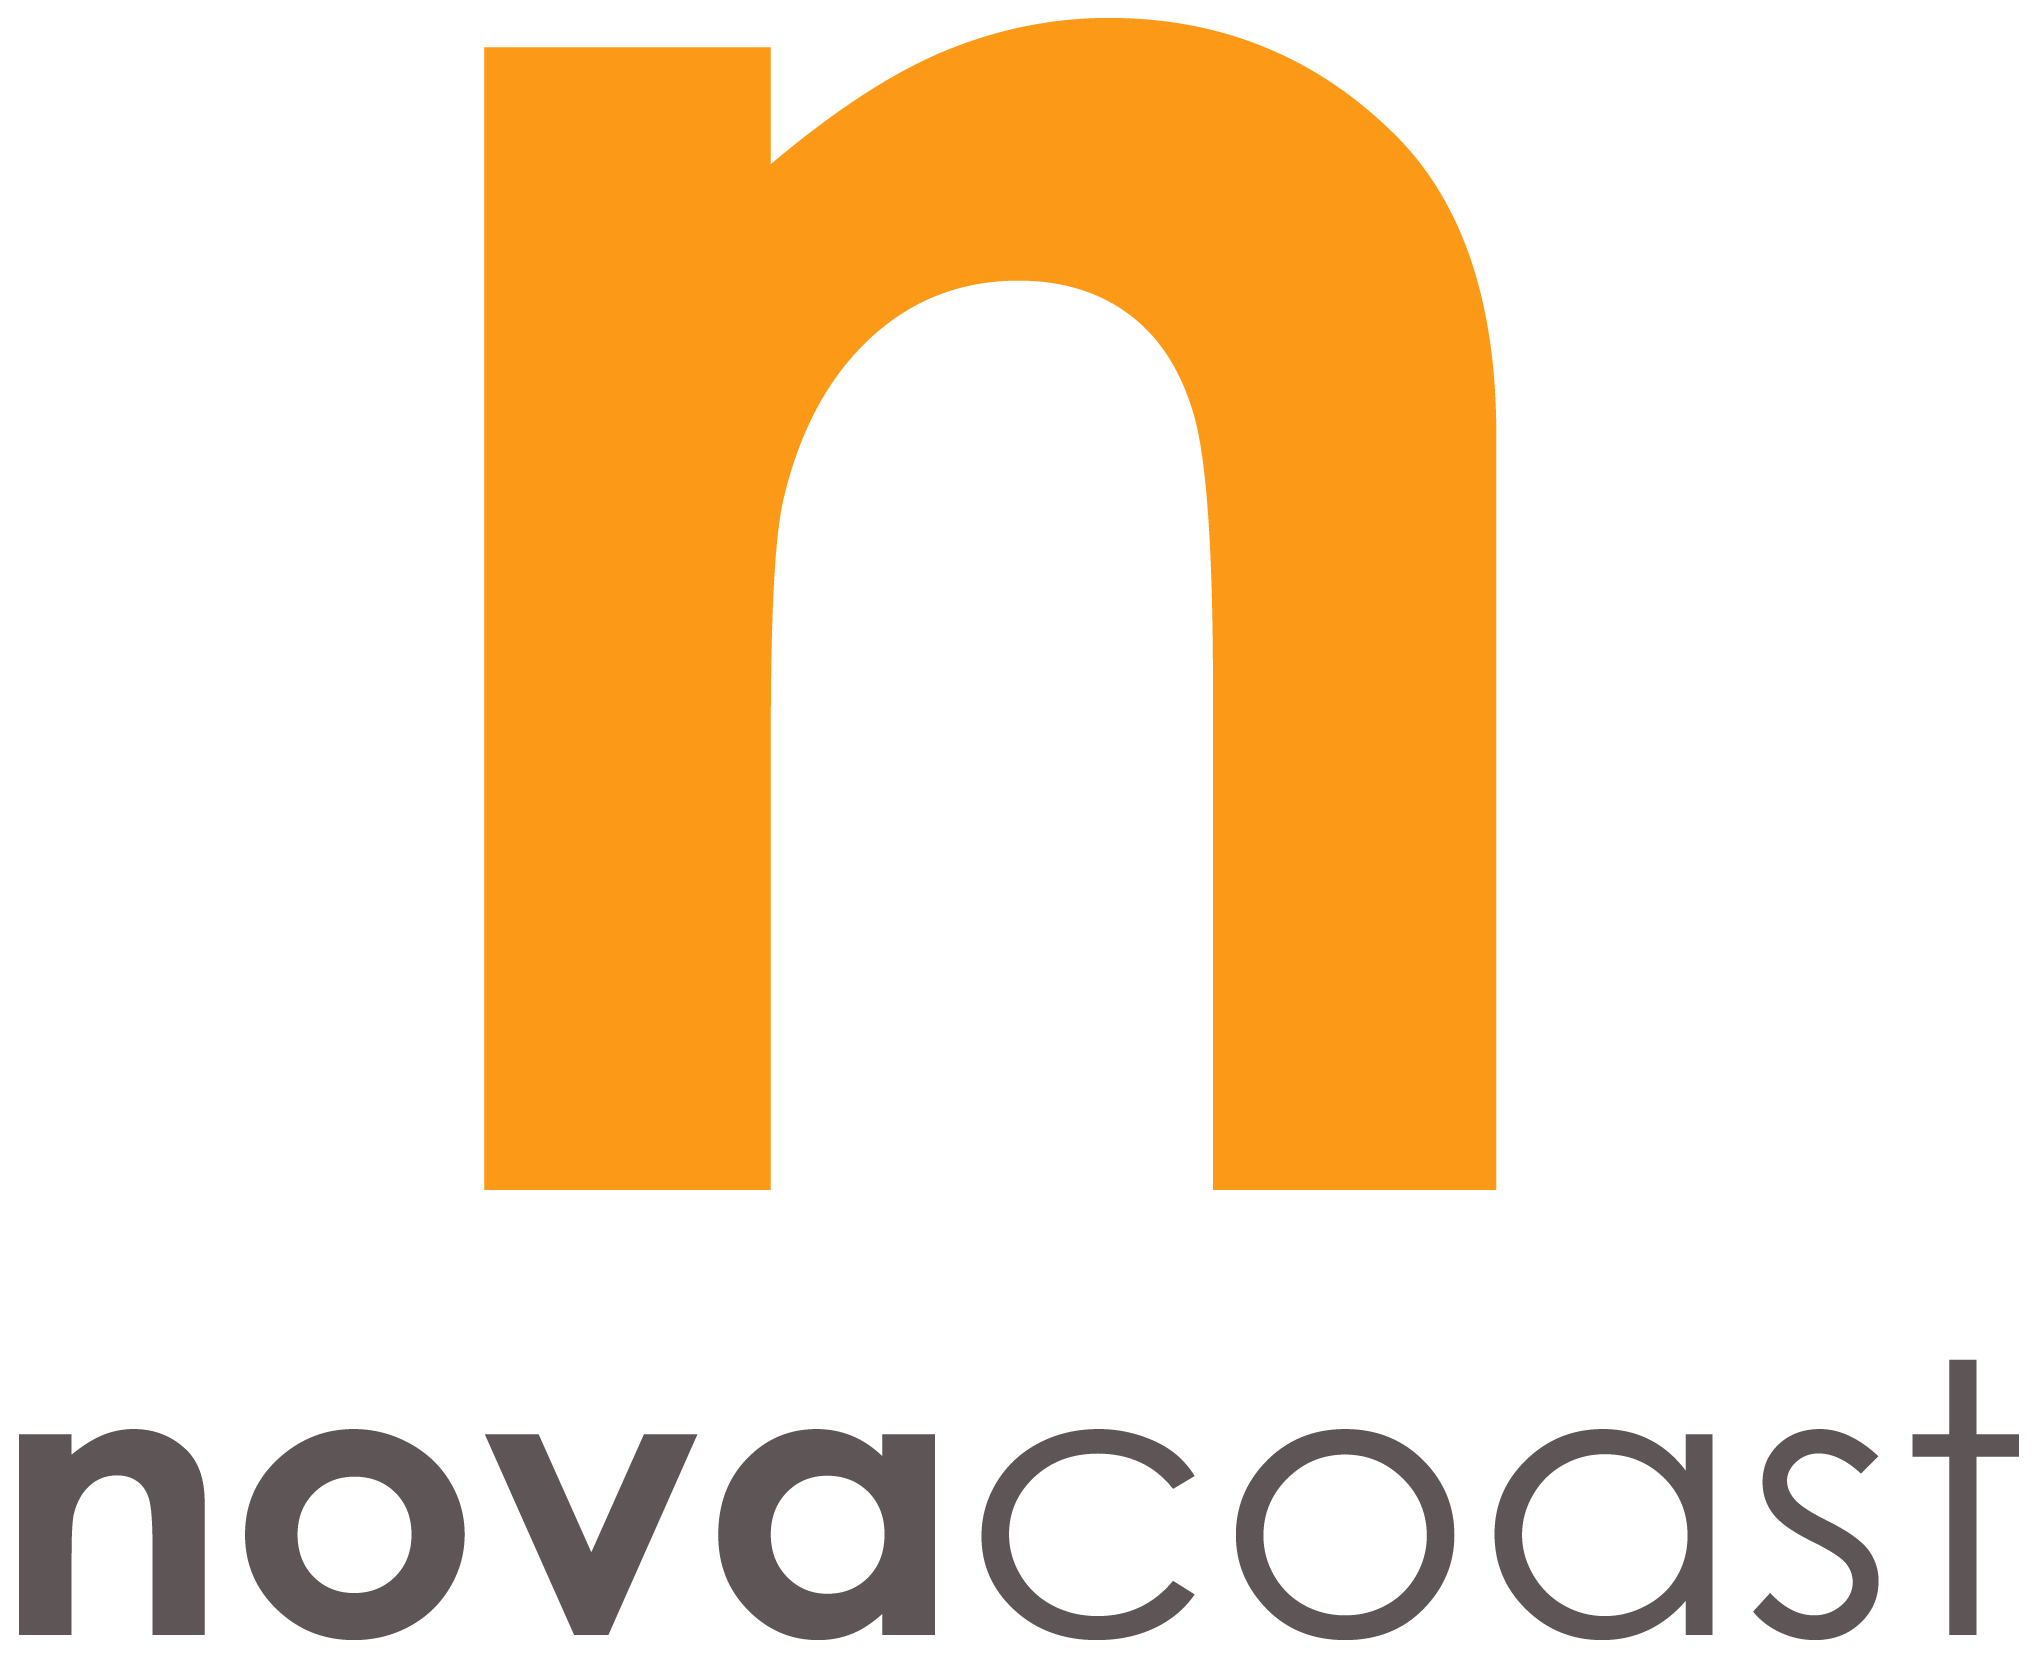 Novacoast Announces Acquisition of Rallypoint Solutions